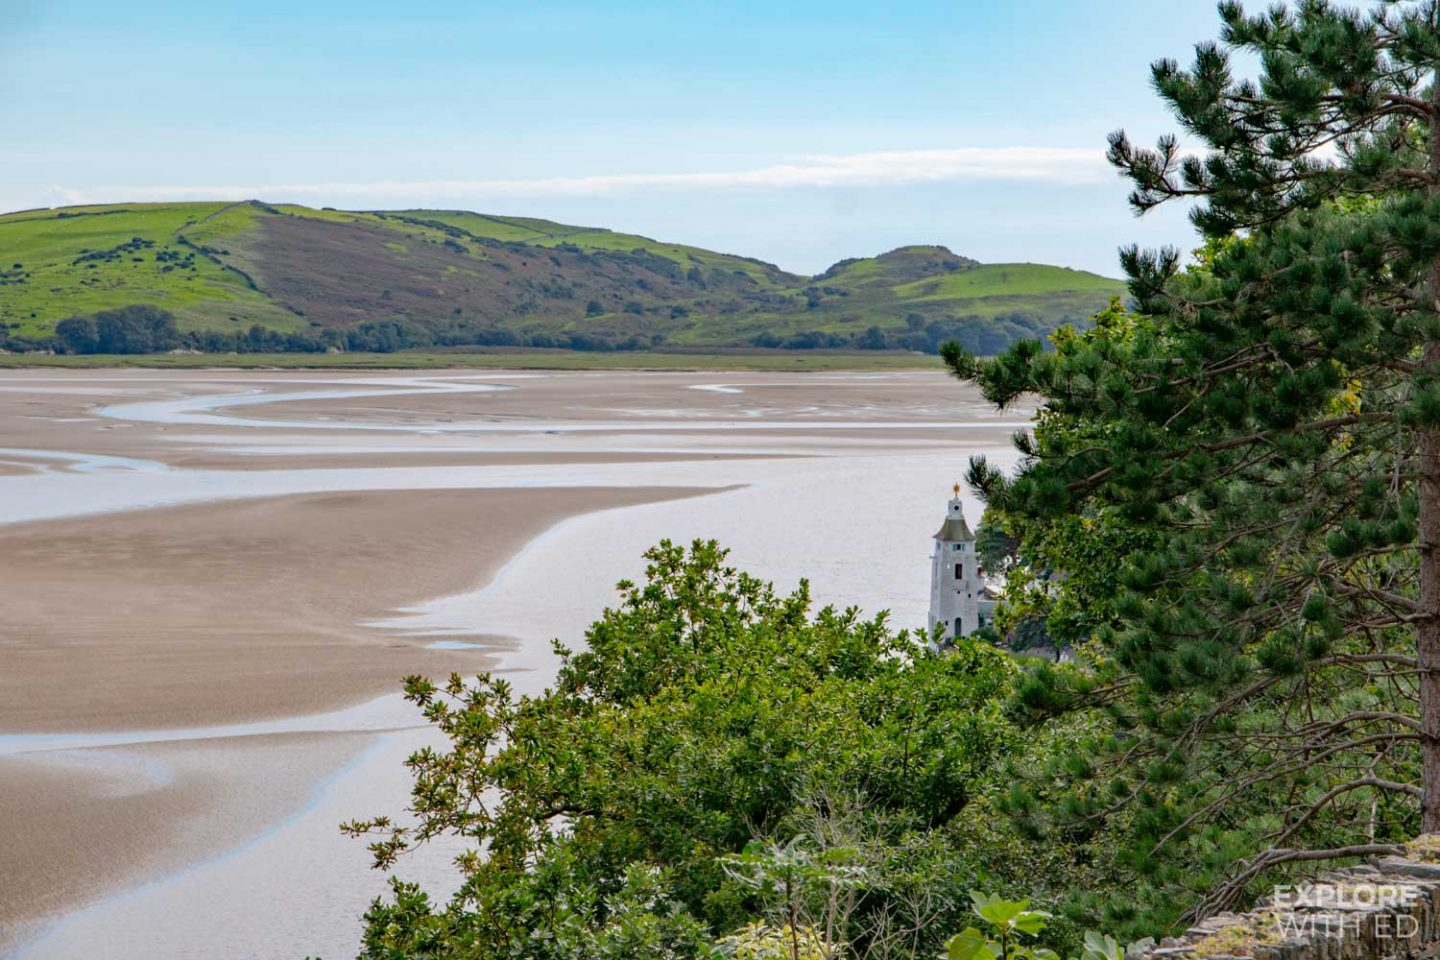 Portmeirion Estuary and Lighthouse